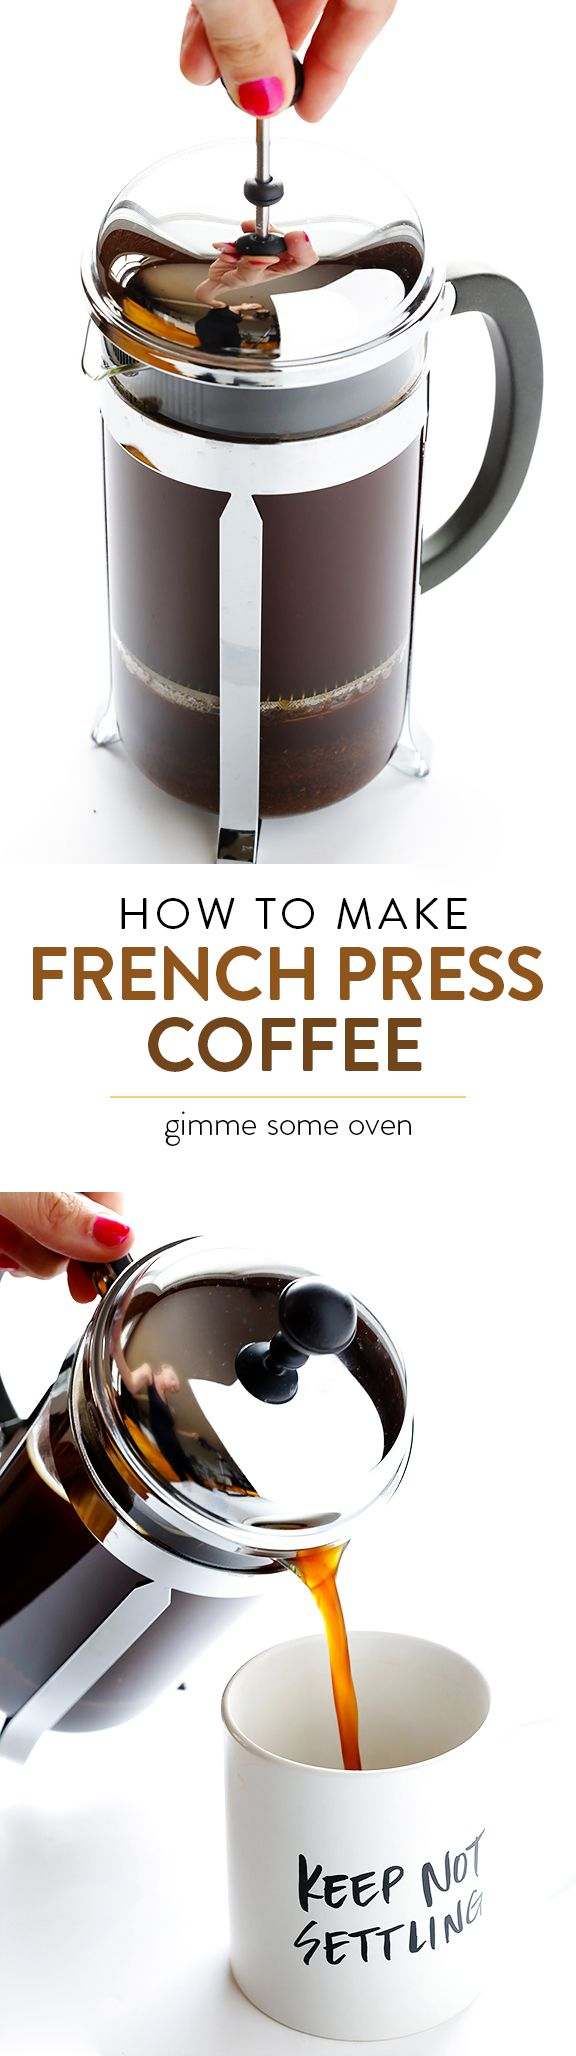 All sorts of great tips and tricks on how to make the PERFECT batch of French Press coffee | gimmesomeoven.com